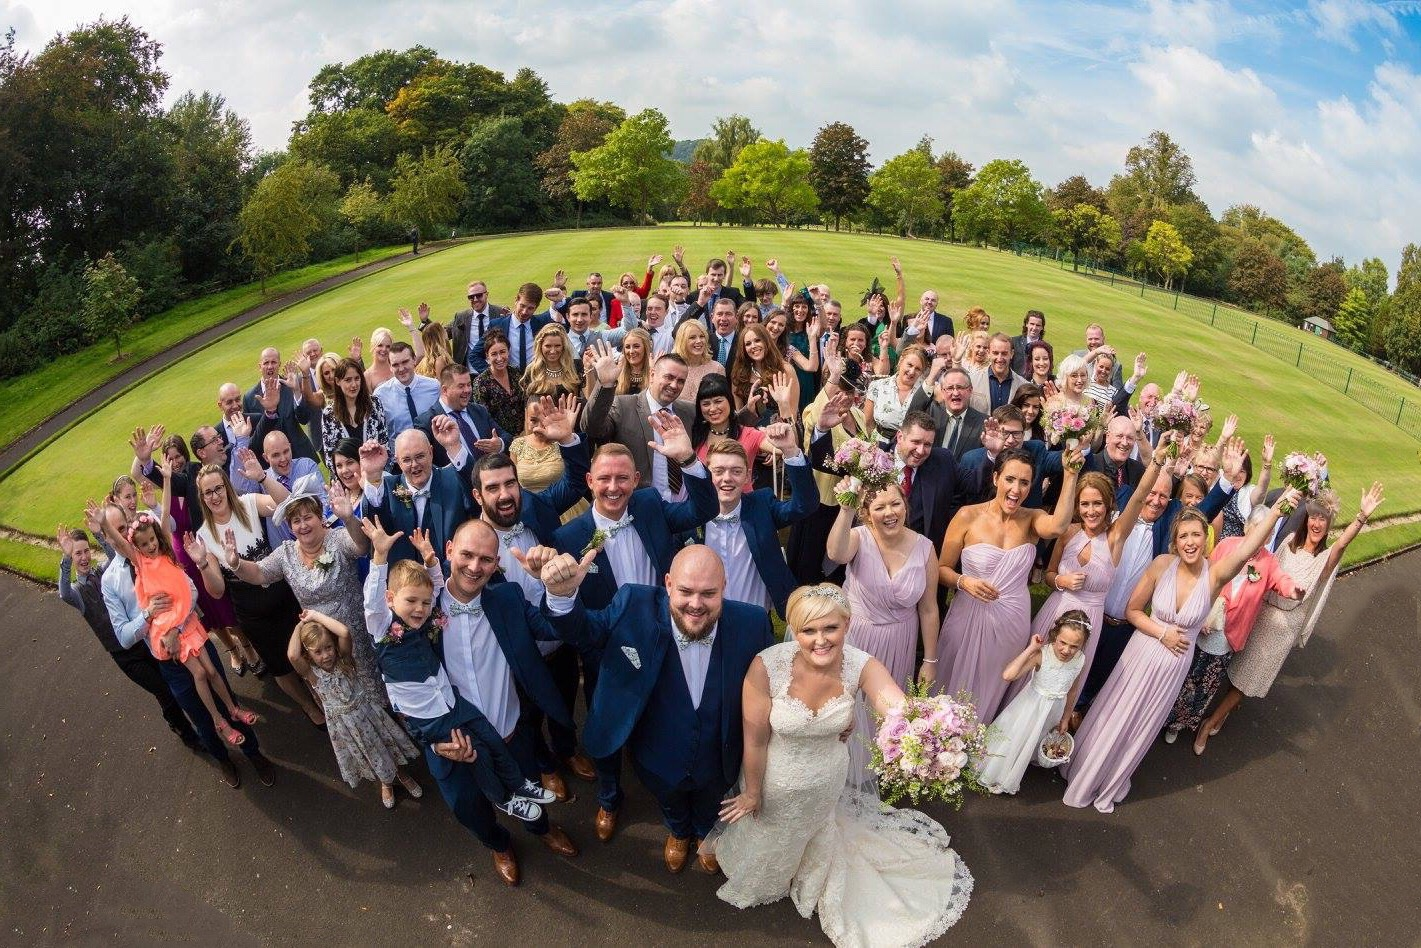 Planning a wedding for 200 Guests? Guide to a stress free wedding